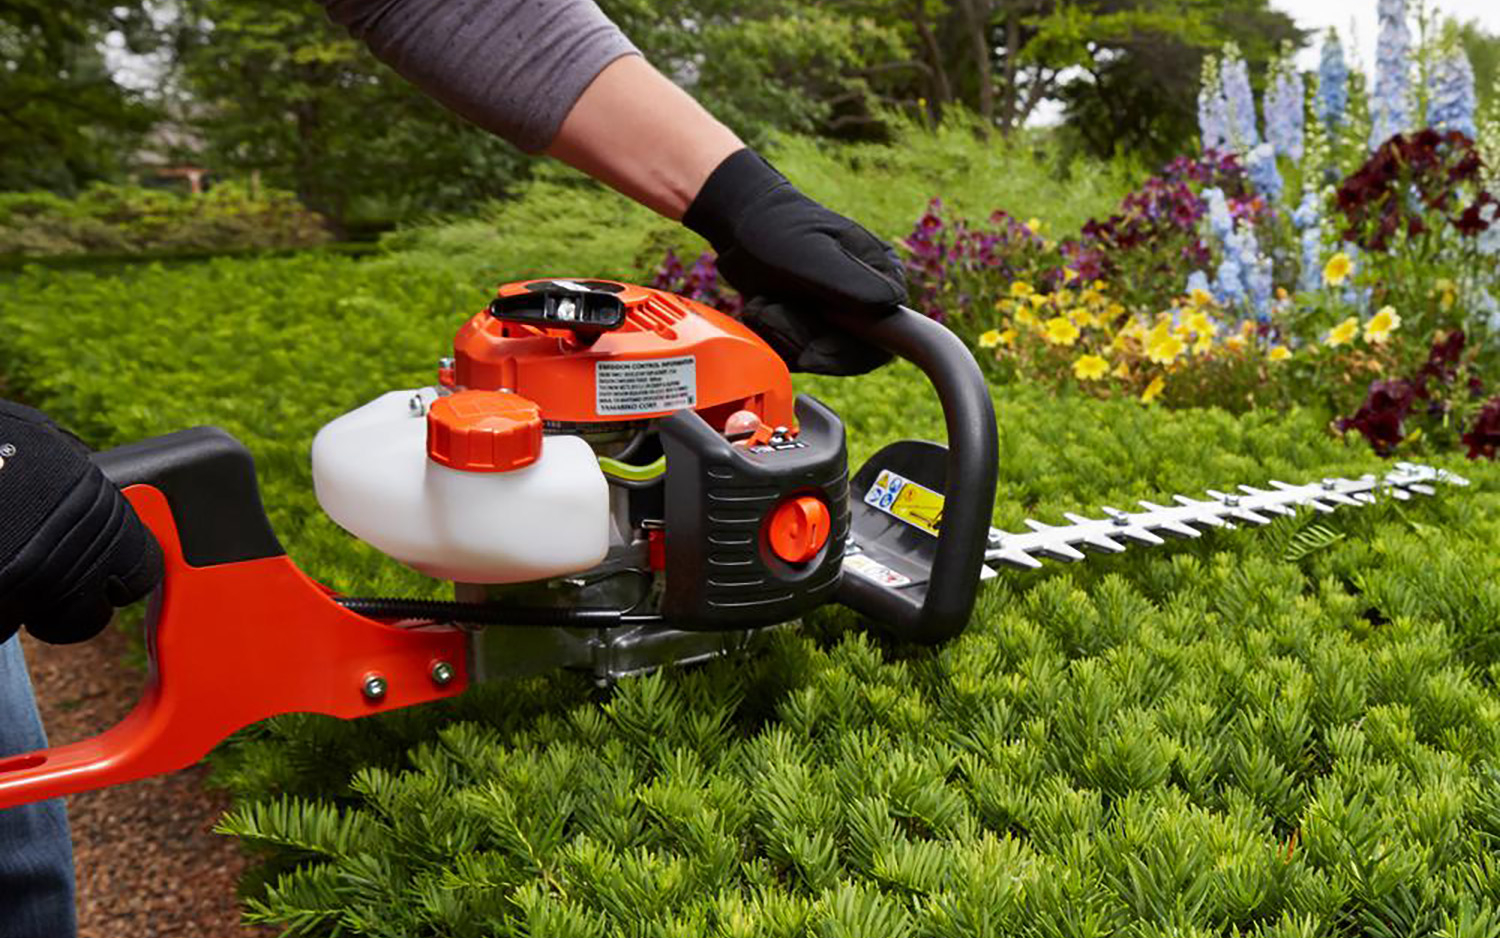 Best Hedge Trimmers of 2019 - Why Cordless Isn't Always